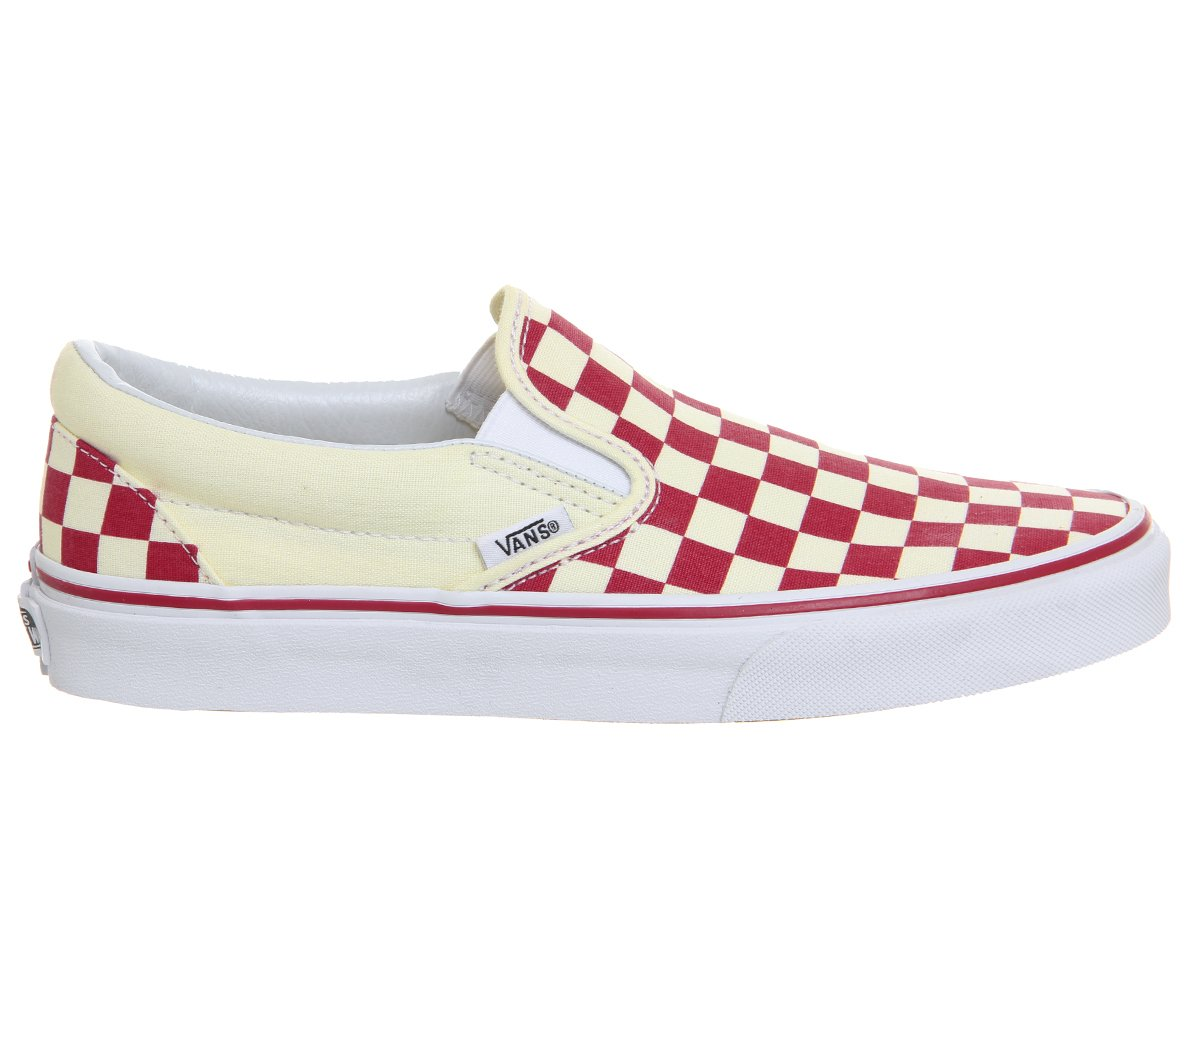 [バンズ] VANS スニーカー Classic Slip-on B07814SRKW 7 B(M) US Women / 5.5 D(M) US Men ( Primary Checker) Racing Red / White